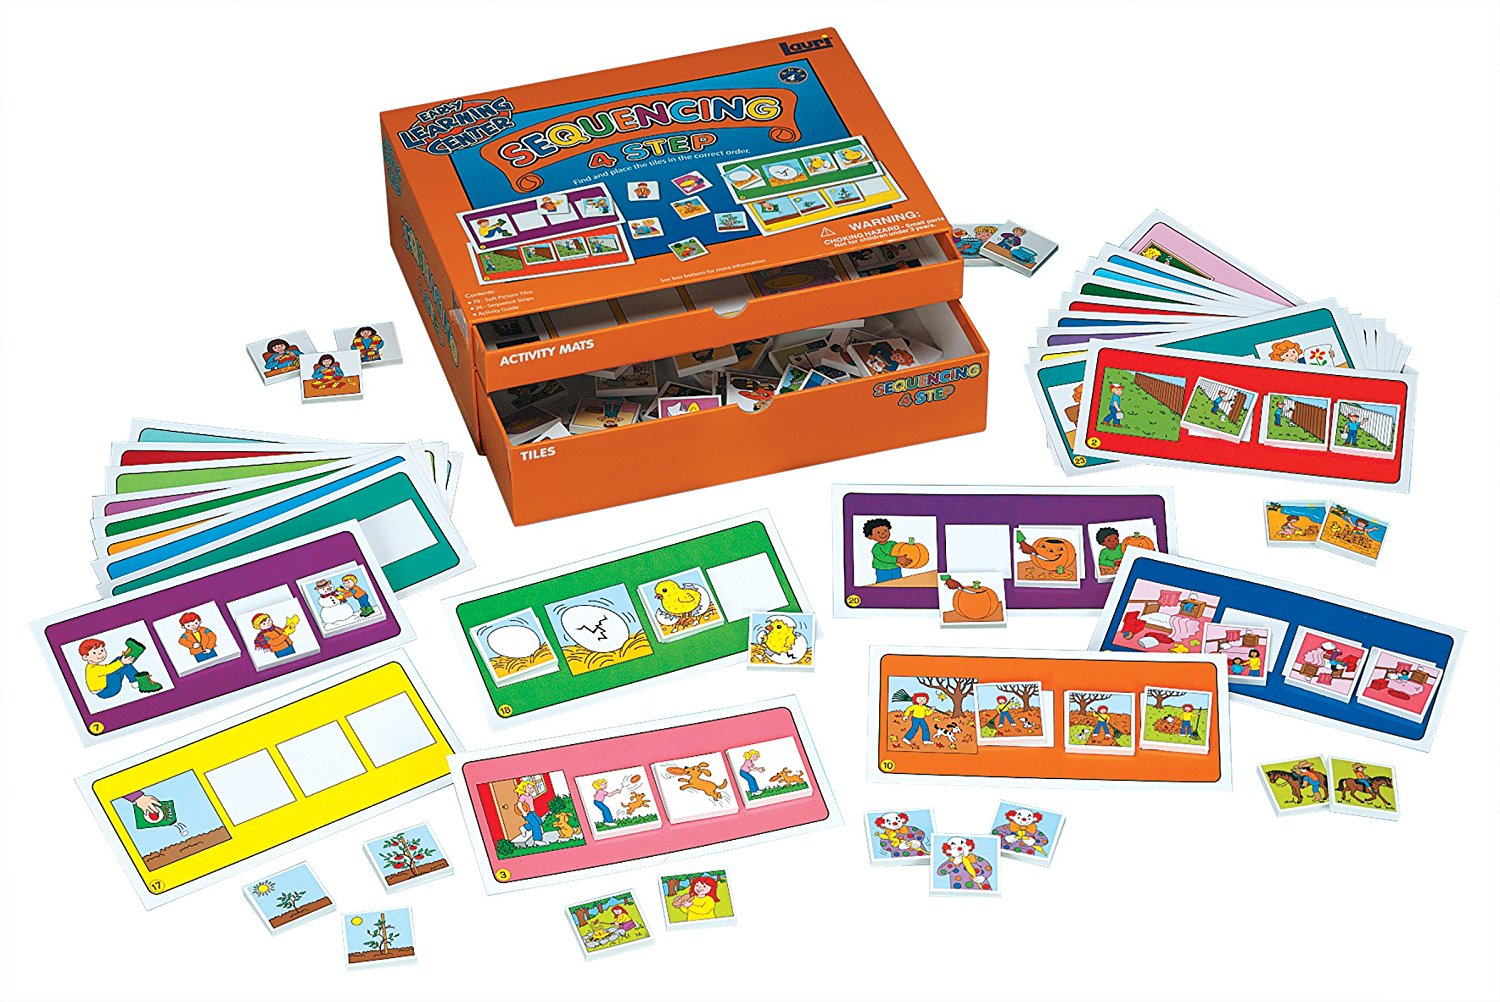 4 Step Sequencing Educational Kit